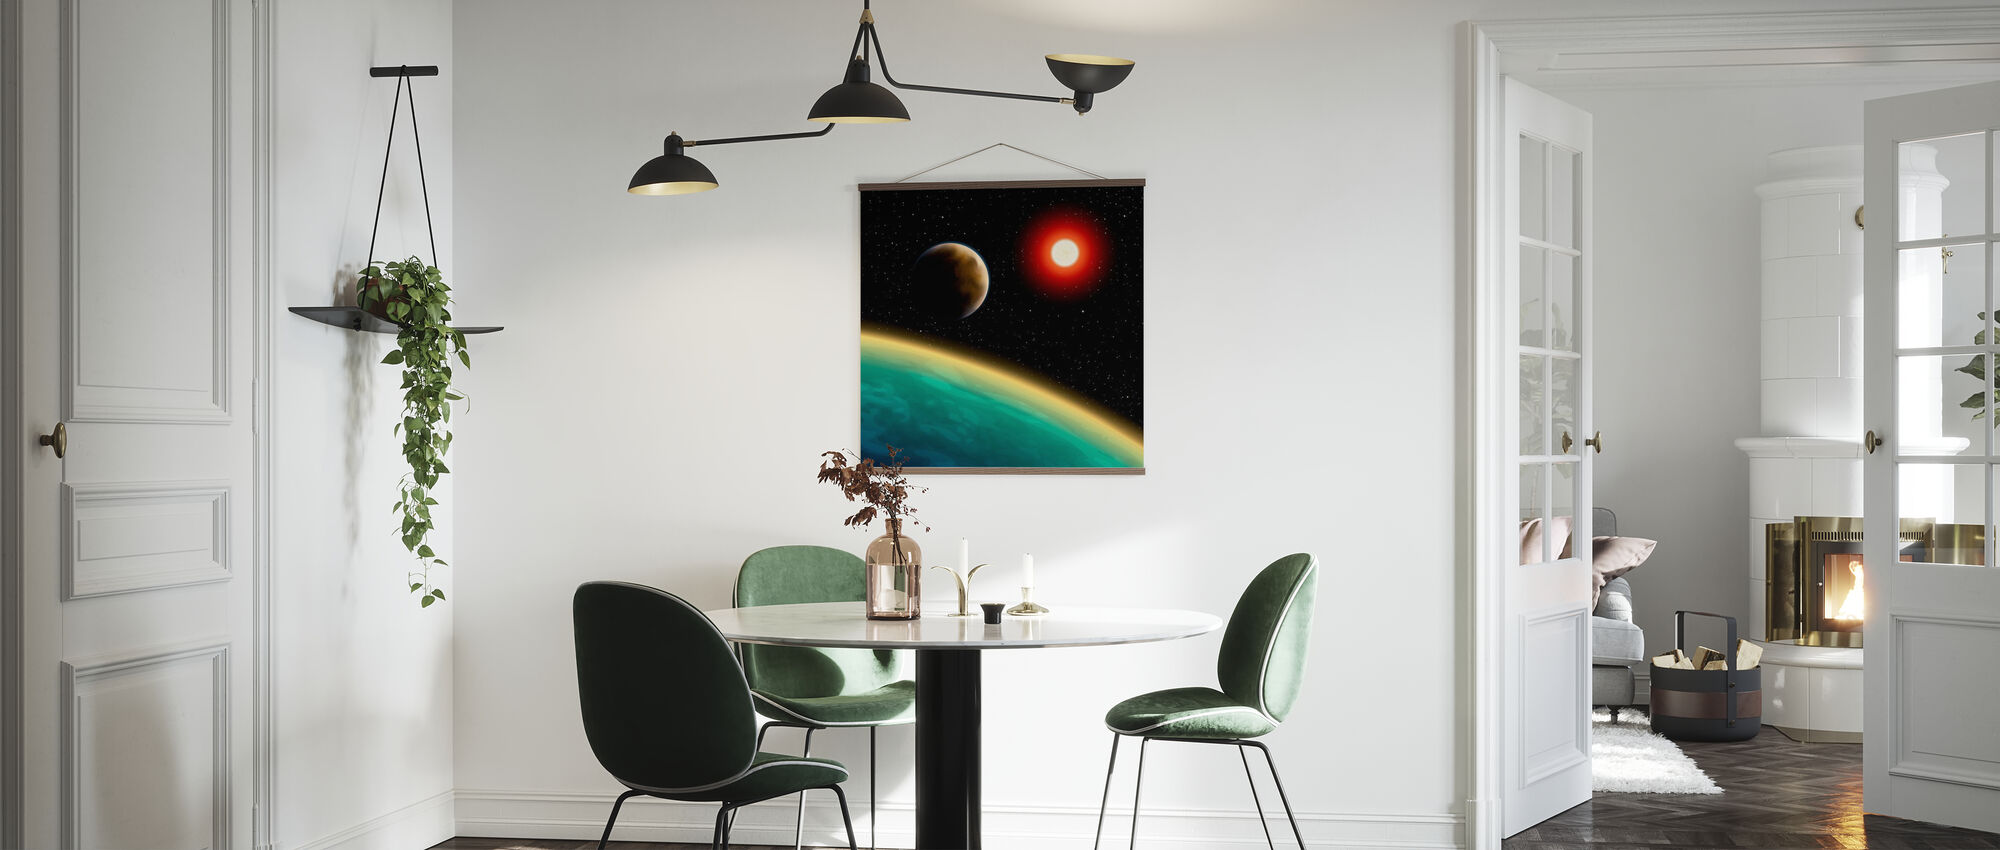 Starry Cosmos - Poster - Kitchen